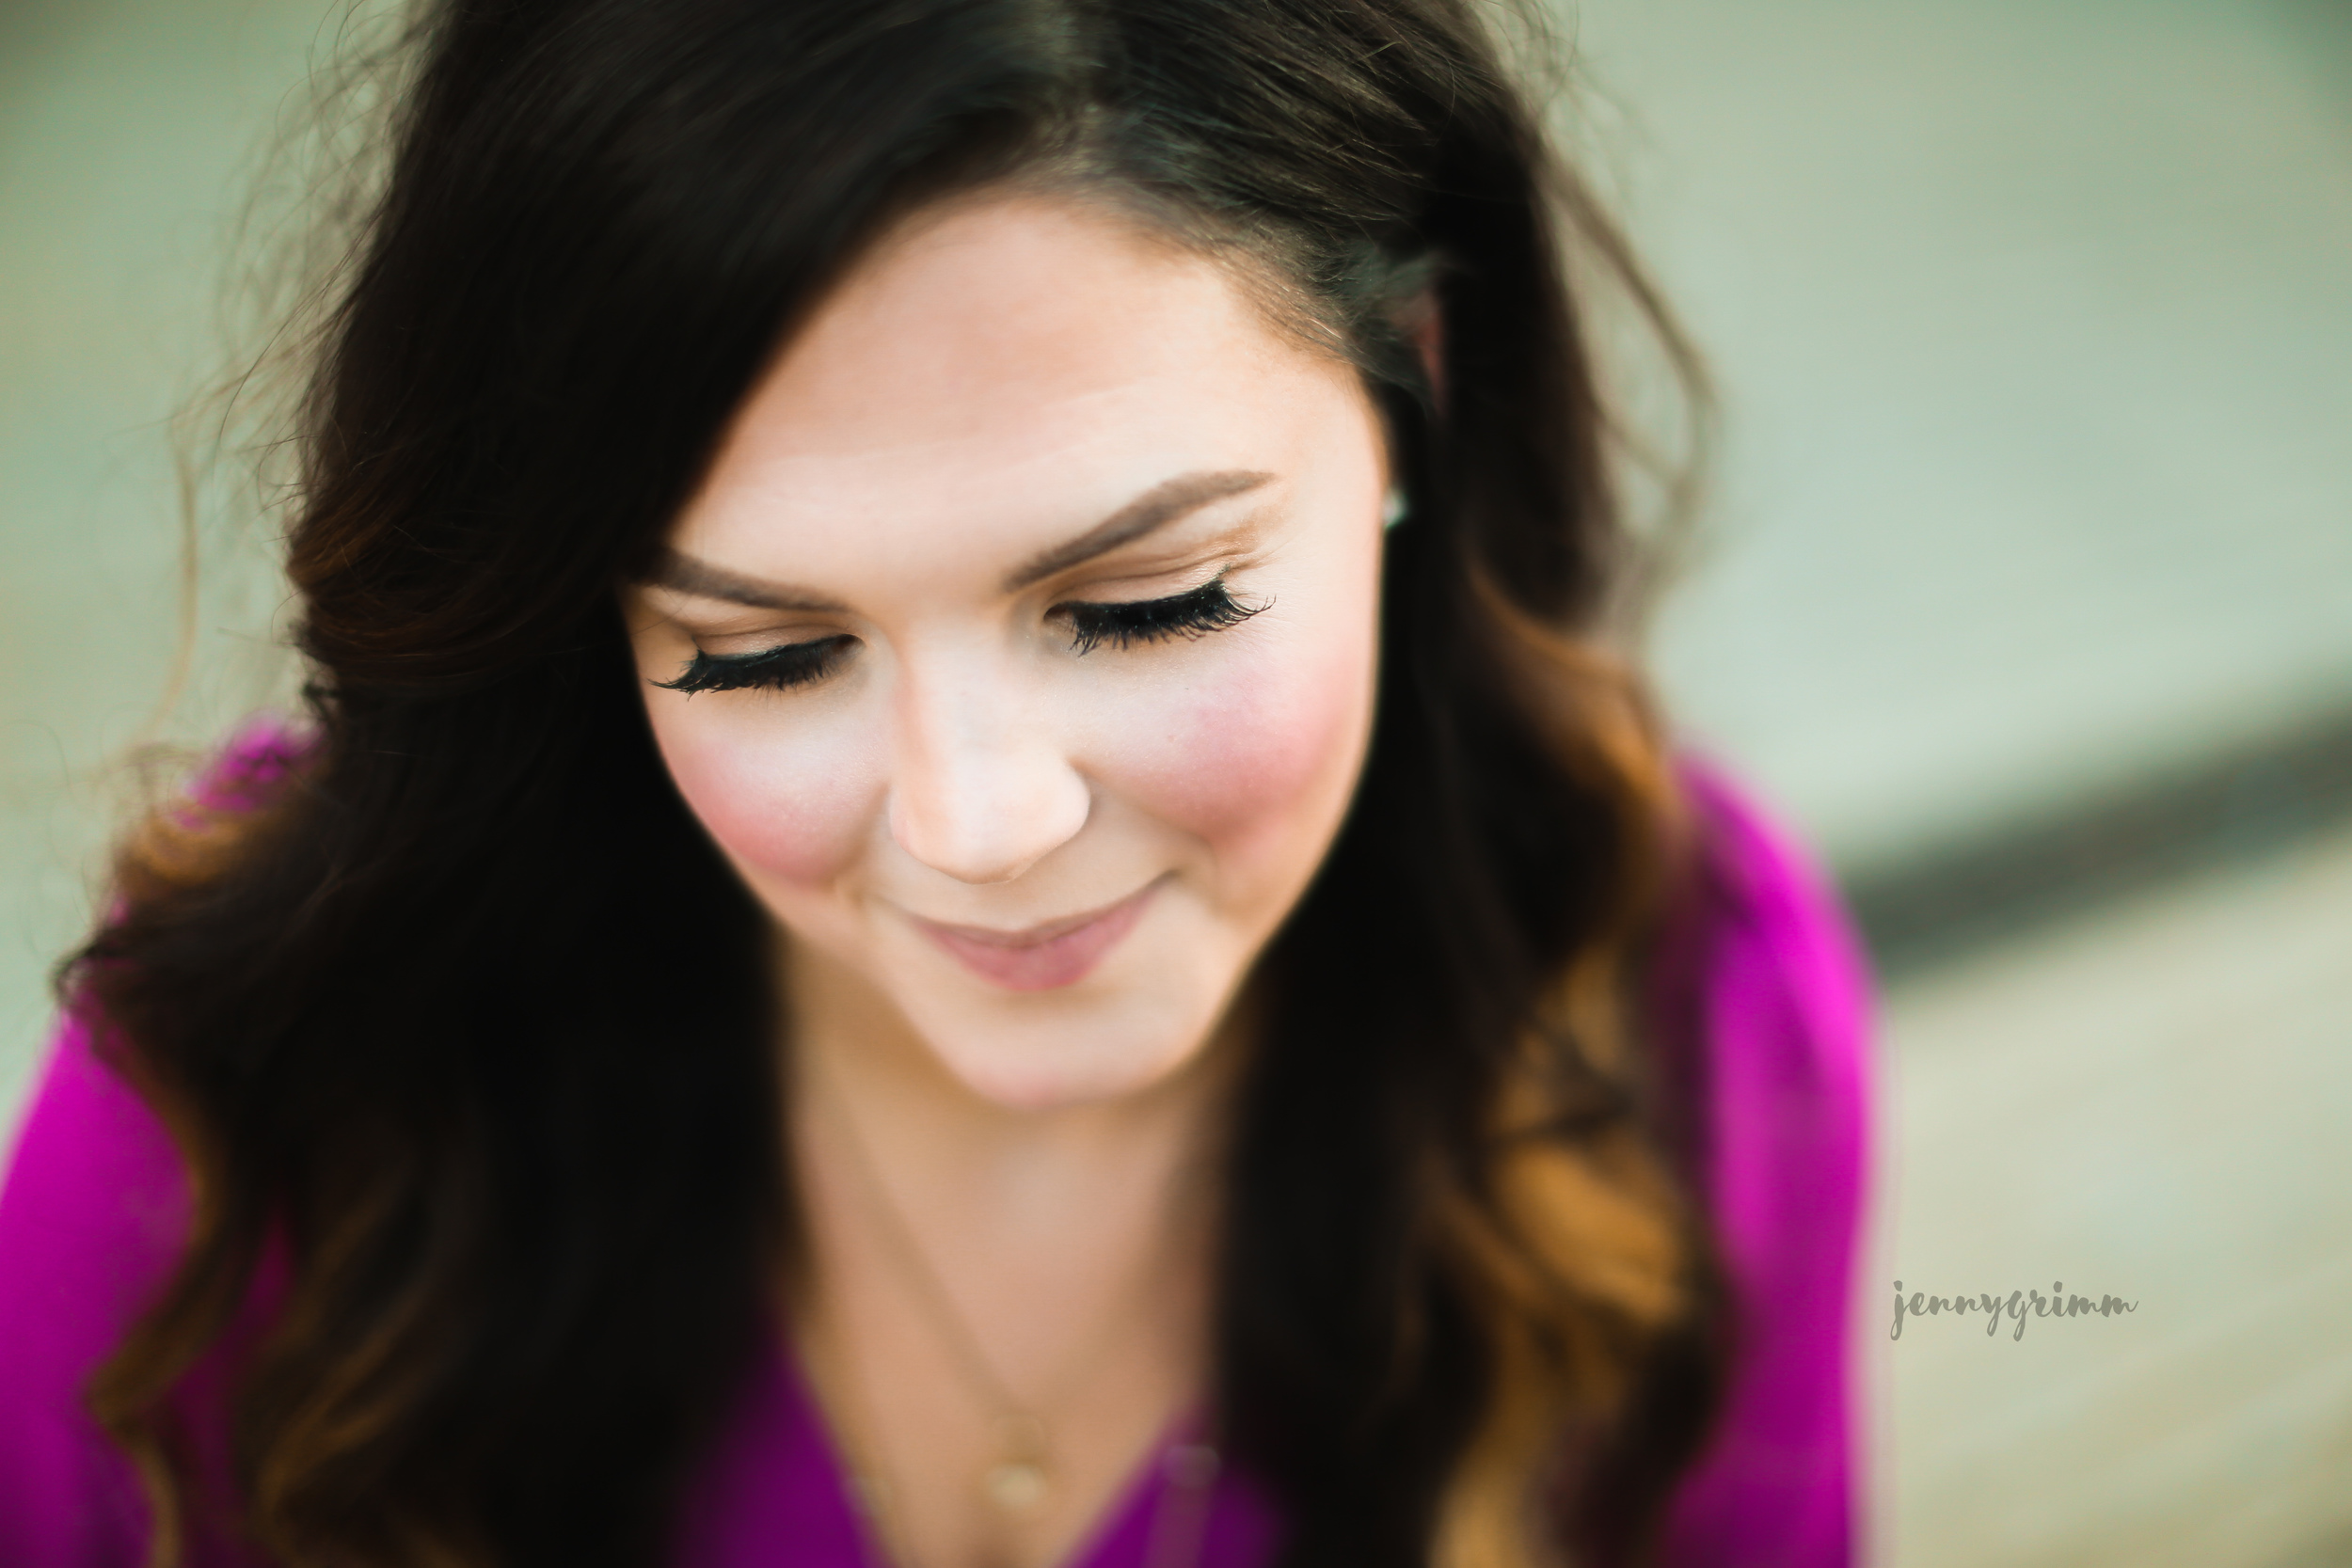 Photo compliments of the super talented Jenny Grimm. (jennygrimm.com)